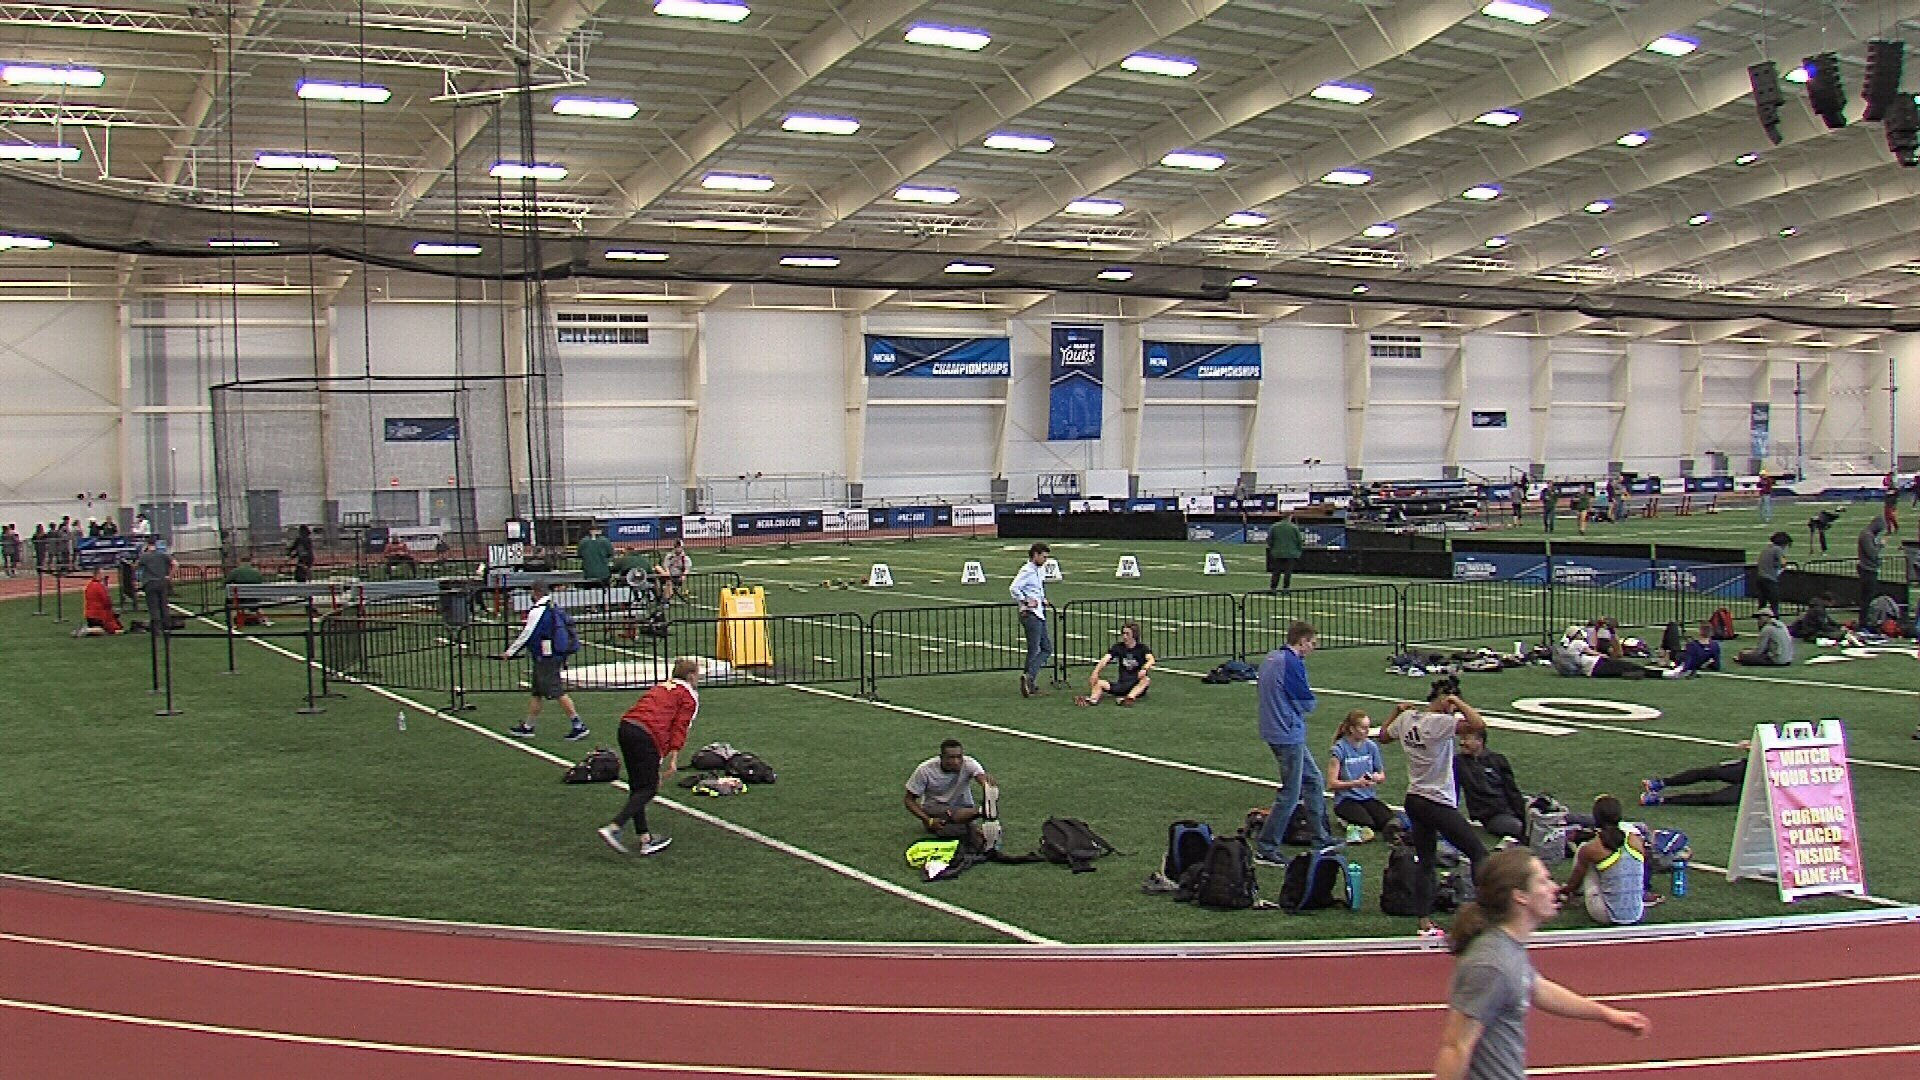 Brentwood High shines at indoor track and field state championships